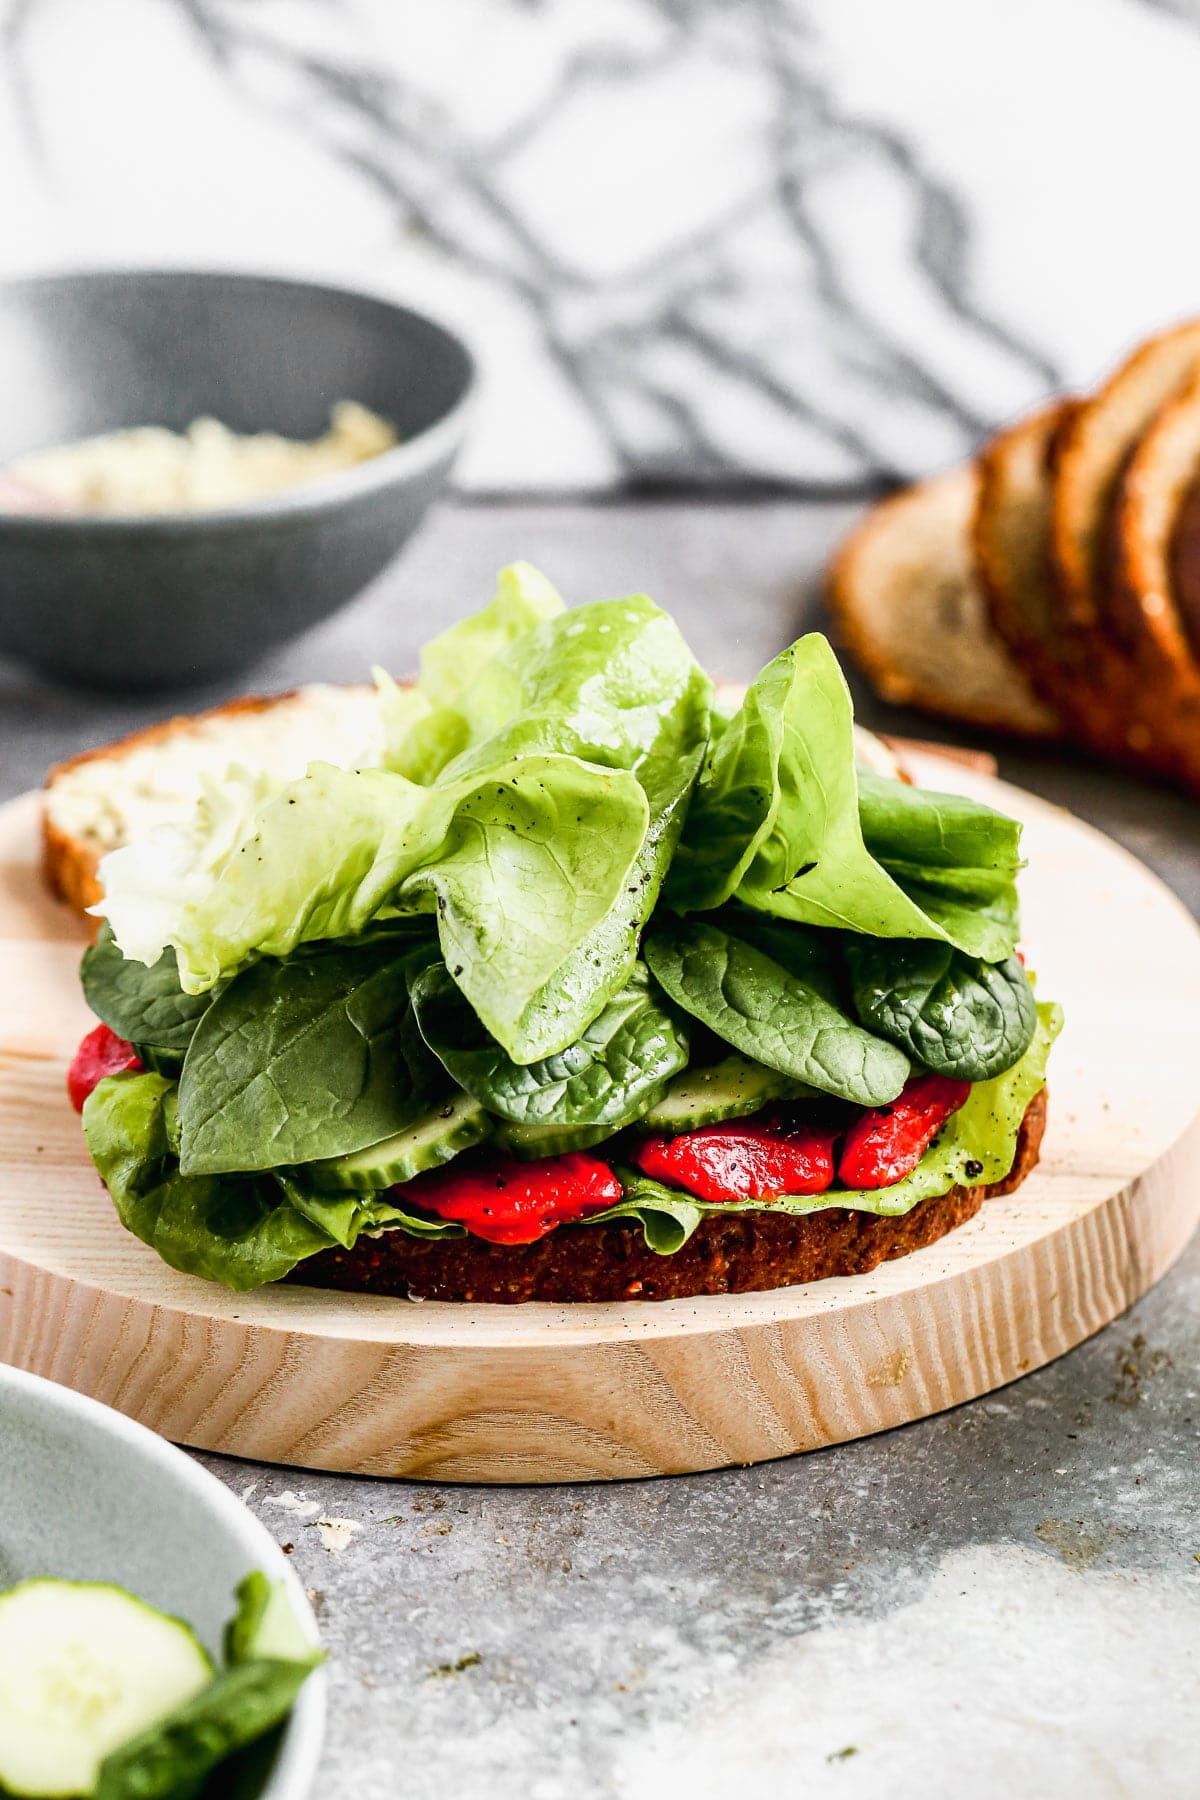 Our take on a classic Cucumber Sandwich includes layers of hearty spinach, vinaigrette-dressed butter lettuce, smoky roasted red peppers, and the pièce de résistance, a pistachio-infused goat cheese that will make you weak in the knees. The perfect lunch to prep early and enjoy all week long.